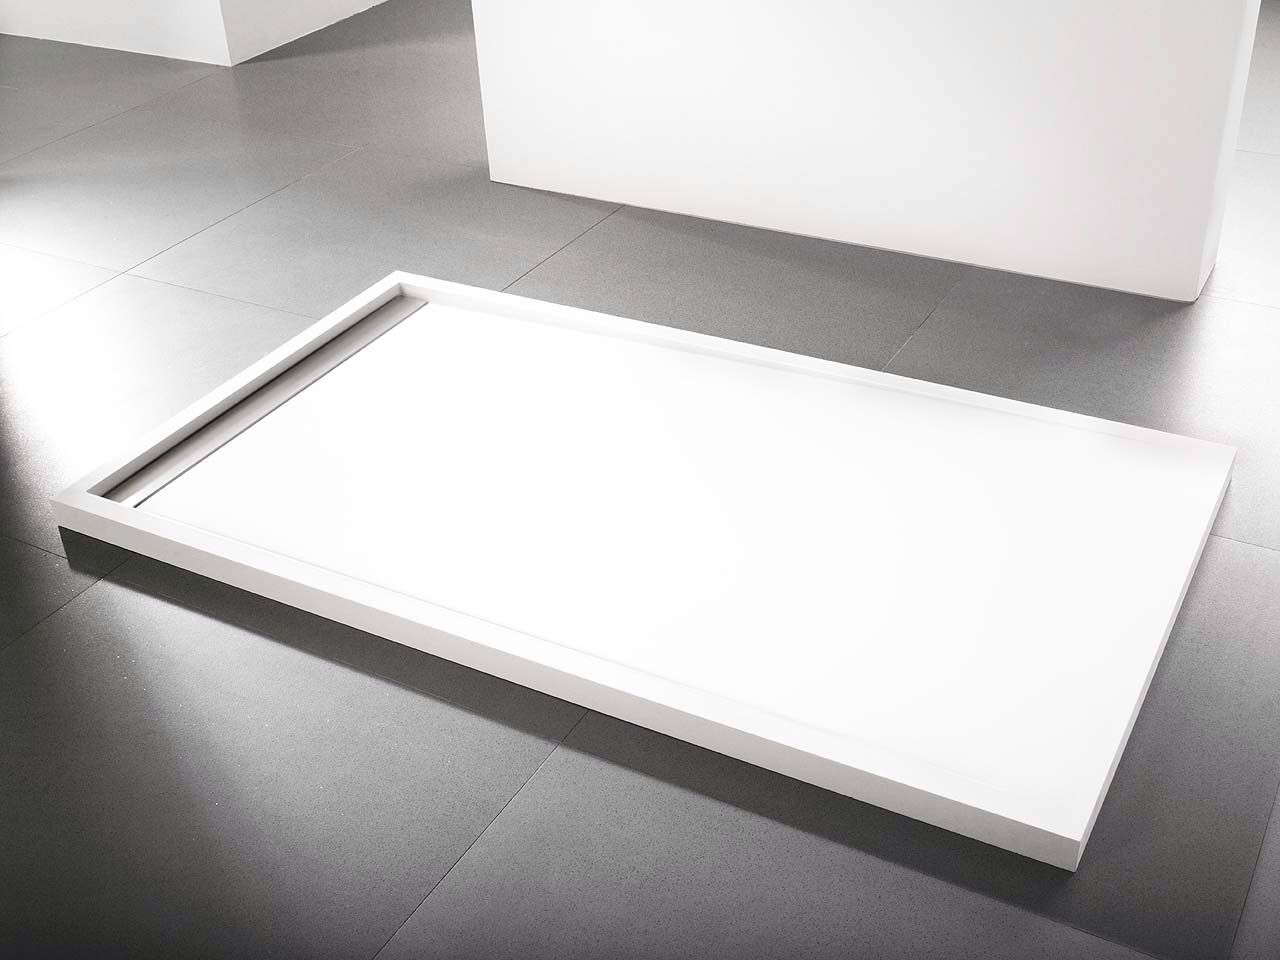 Kaldewei Conoflat Porcelanosa Shower Tray | Bathroom Design | Bathroom Taps